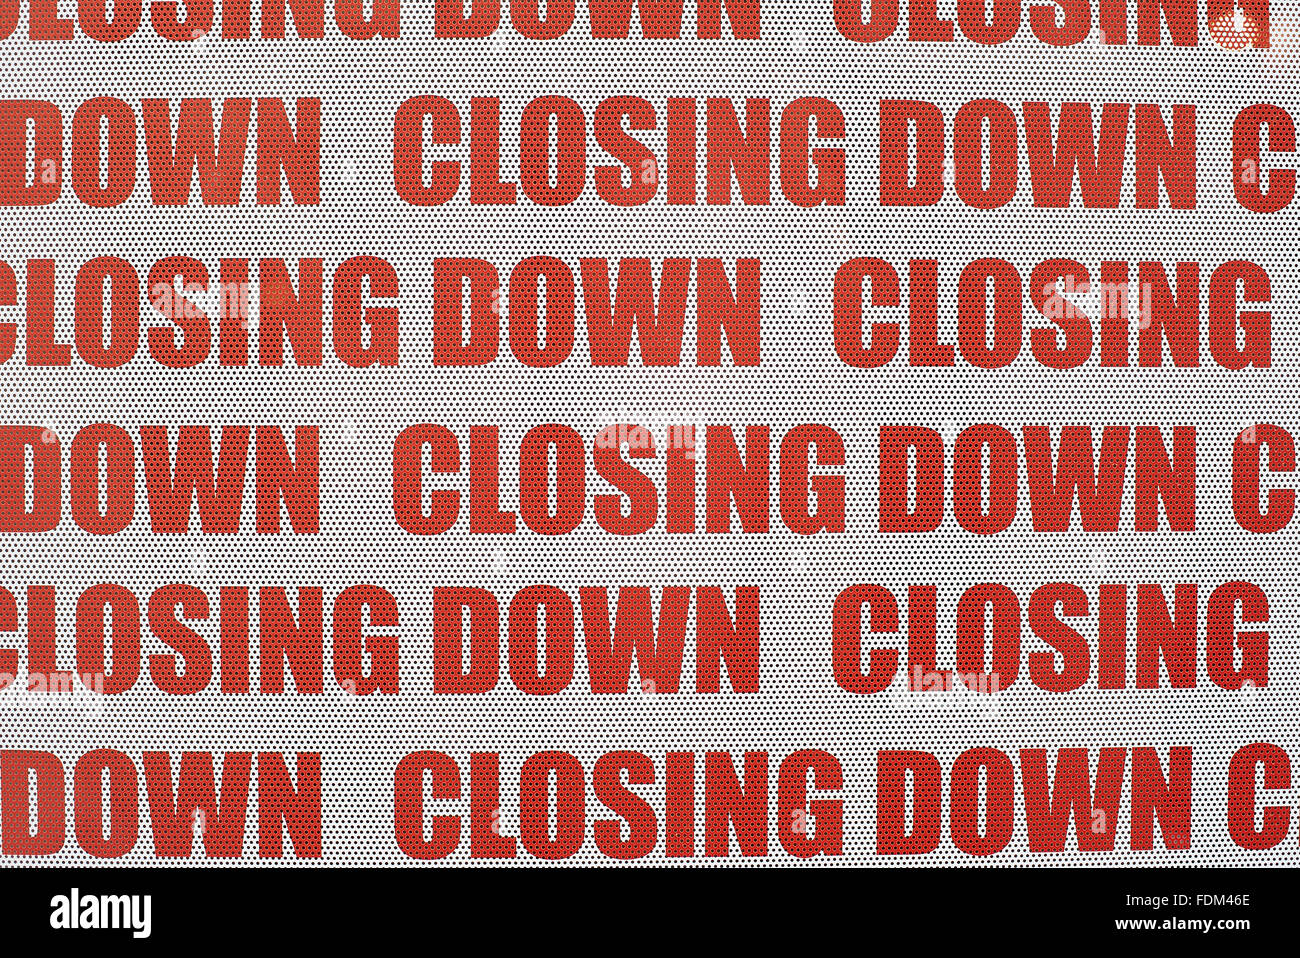 Closing Down Window Sign - detail - Stock Image